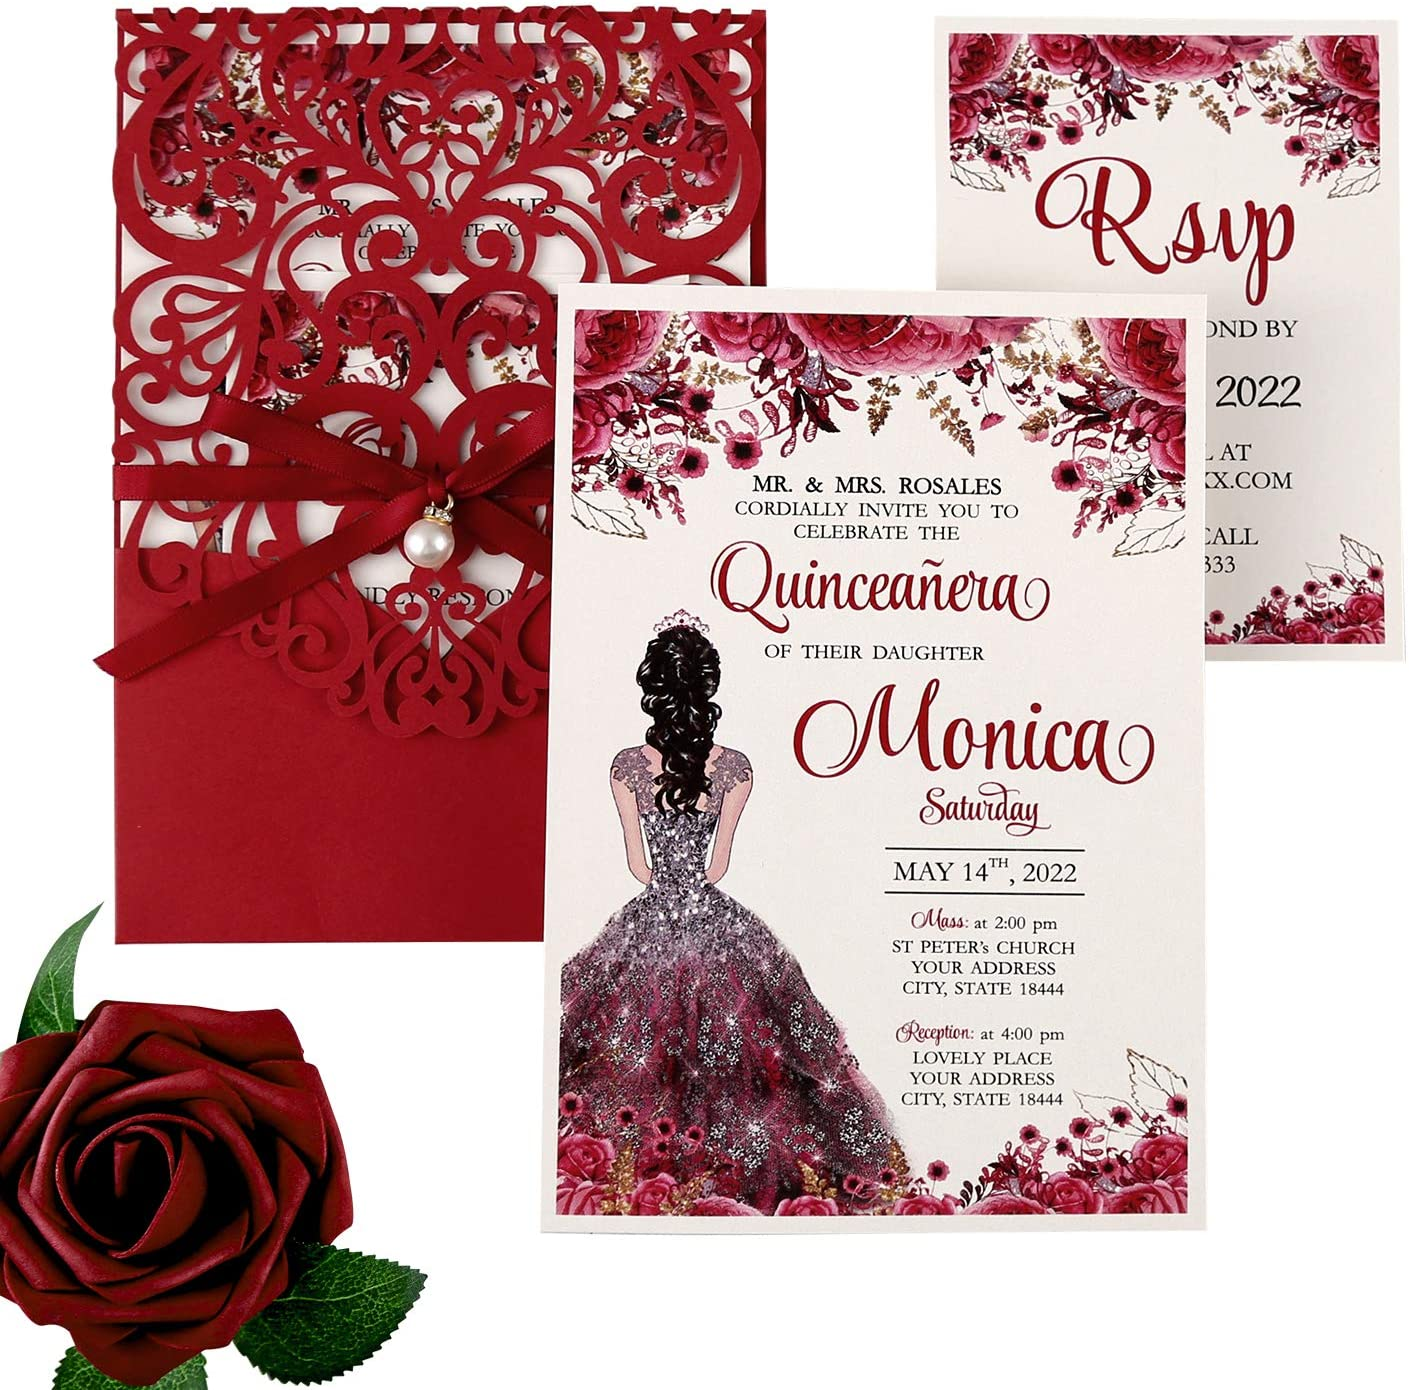 DreamBuilt 4.7X7 Inch 50PCS Blank Laser Cut Red Wedding Invitations With Rsvp Cards And Envelopes And Ribbon Belly Band Pearl Embellishments Wedding Invitation Cards For Wedding Invite